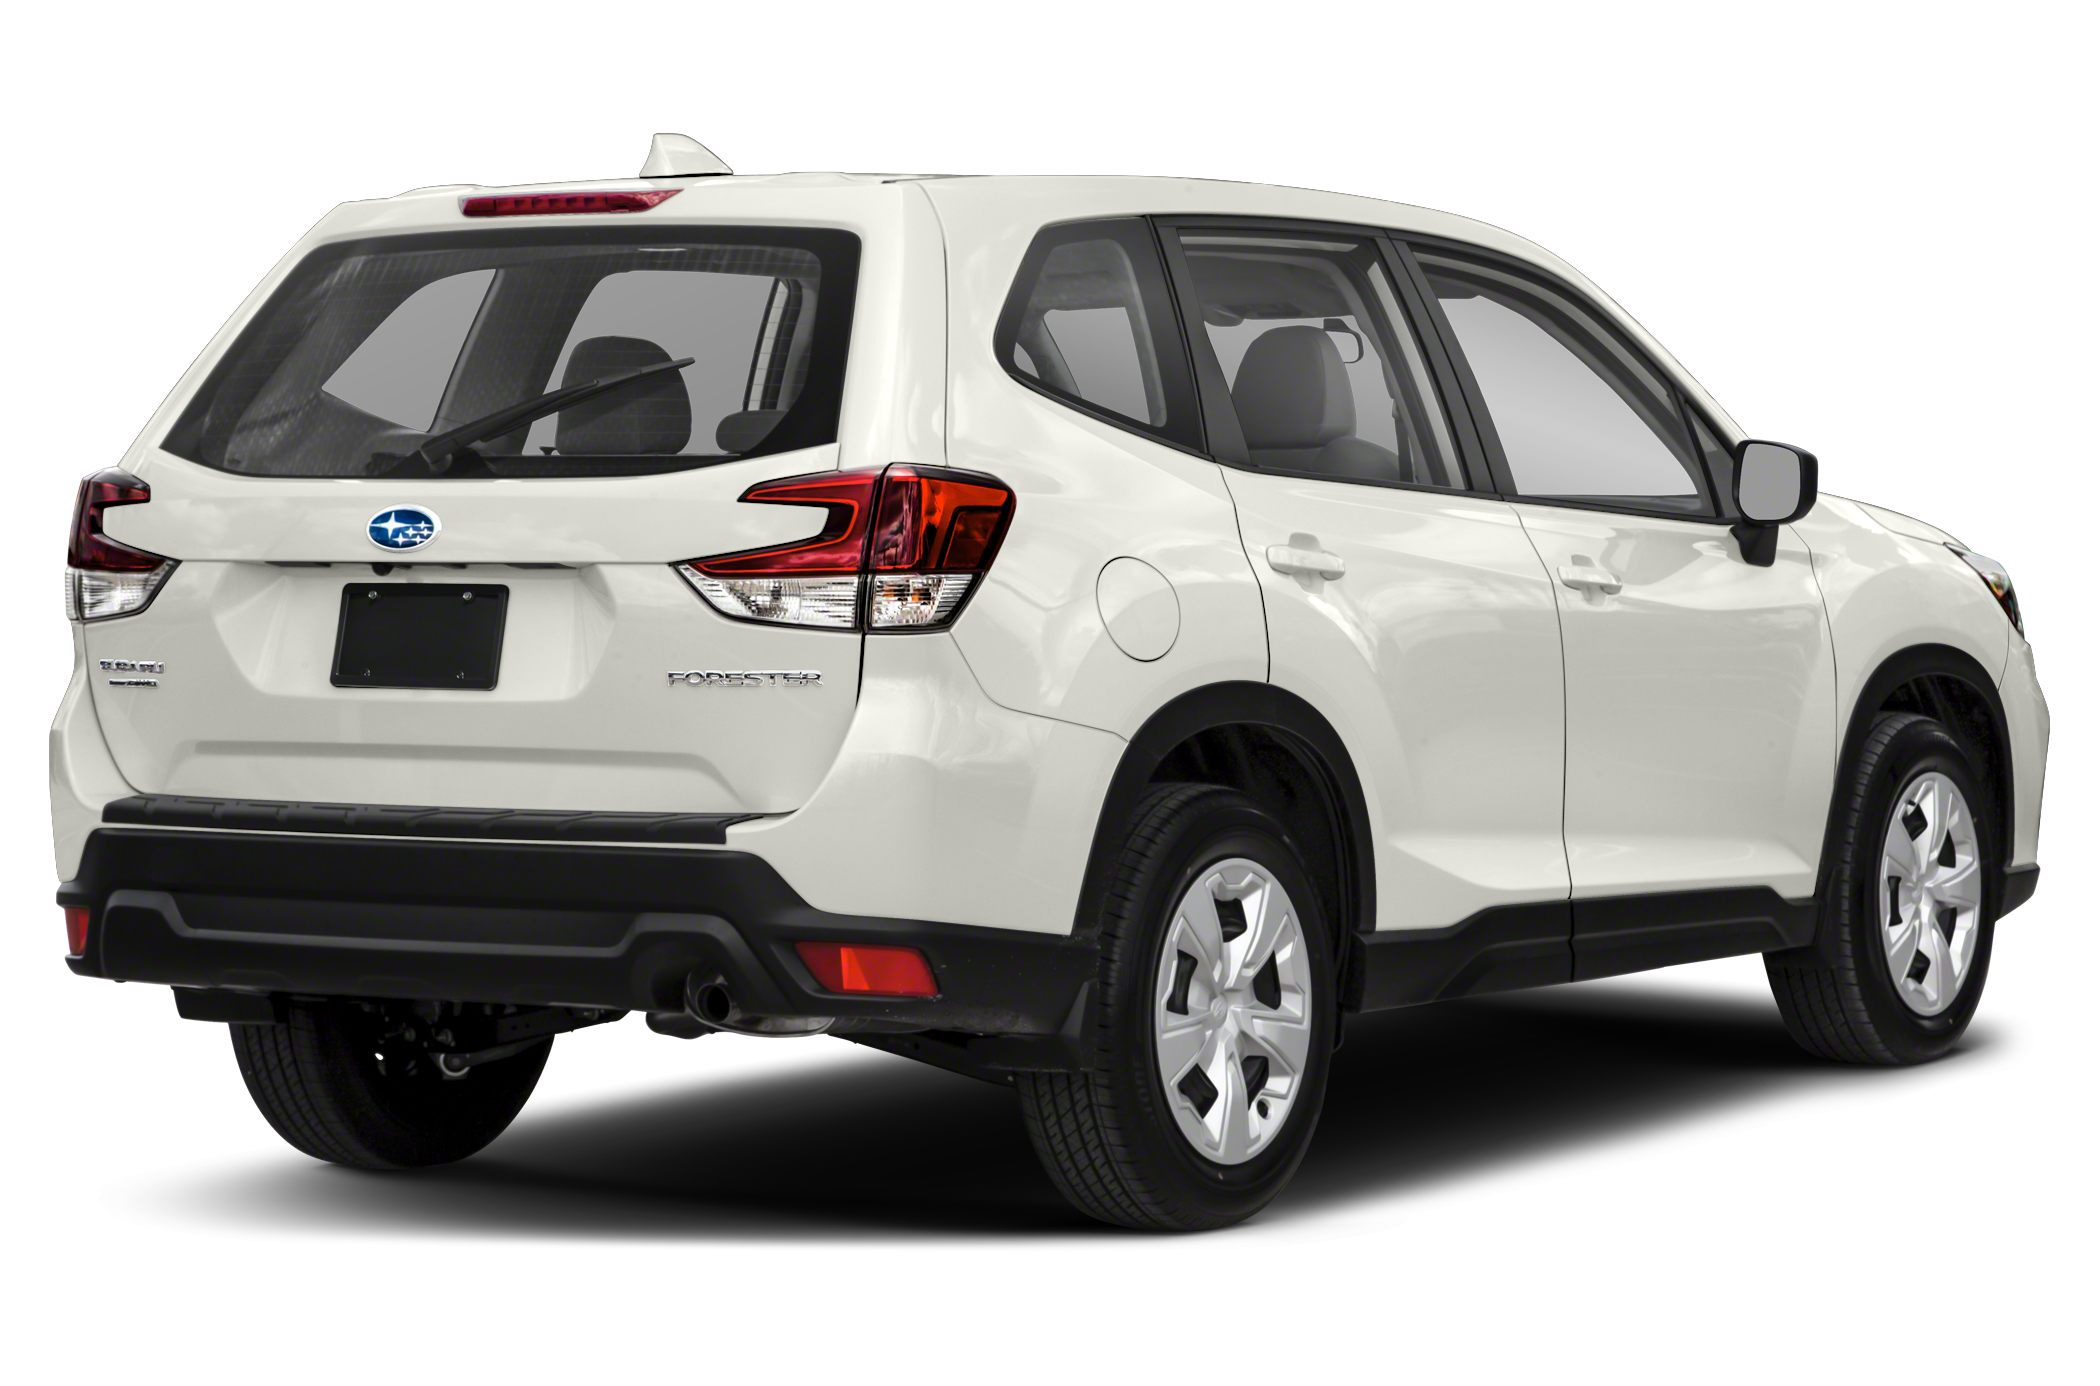 2019 Subaru Forester Deals Prices Incentives Leases Overview